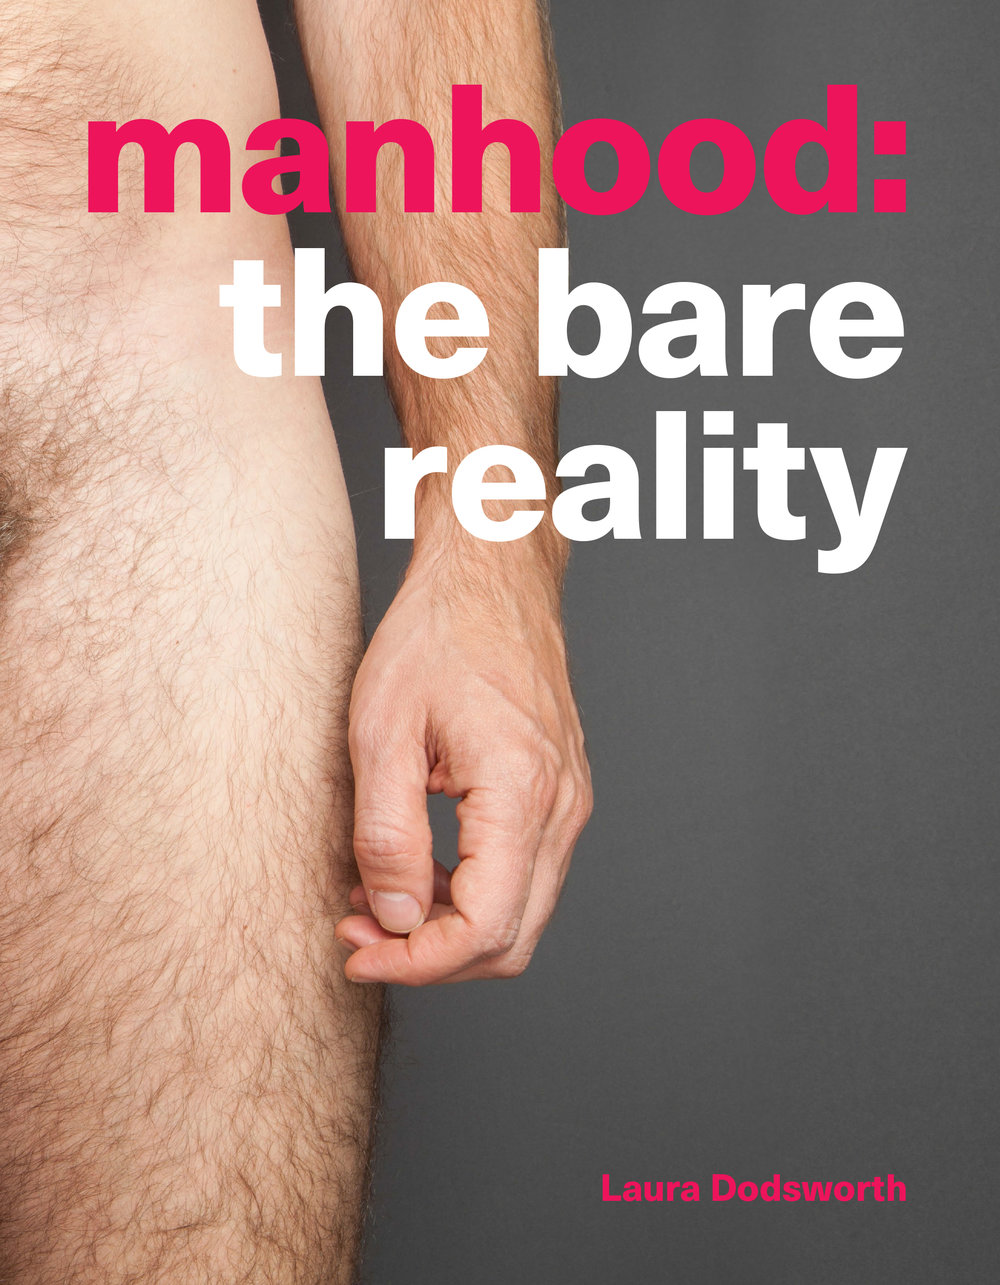 100 men bare all - In a collection of photographs and interviews about manhood and 'manhood'… read more